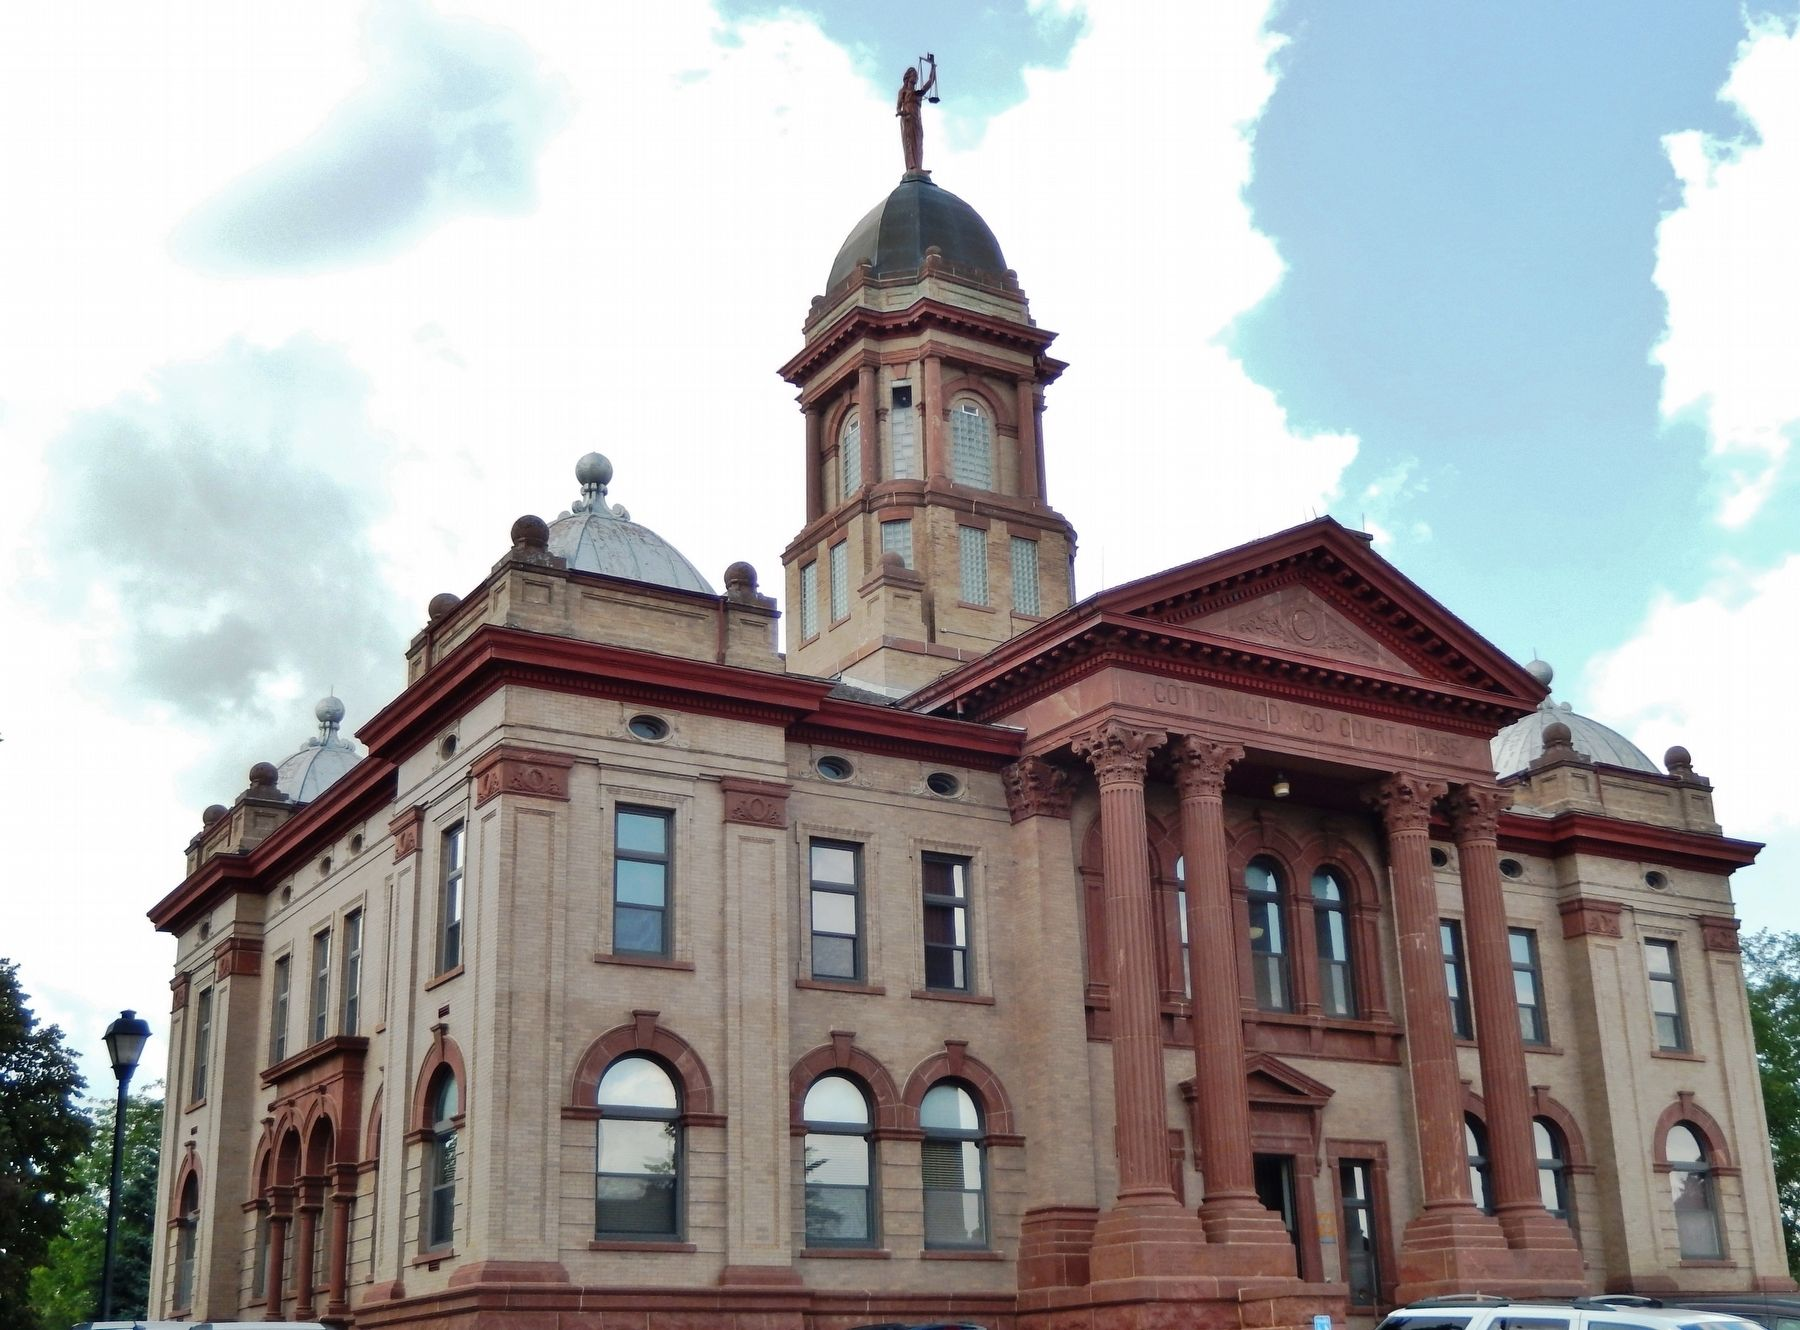 Cottonwood County Courthouse (<i>southeast elevation</i>) image. Click for full size.